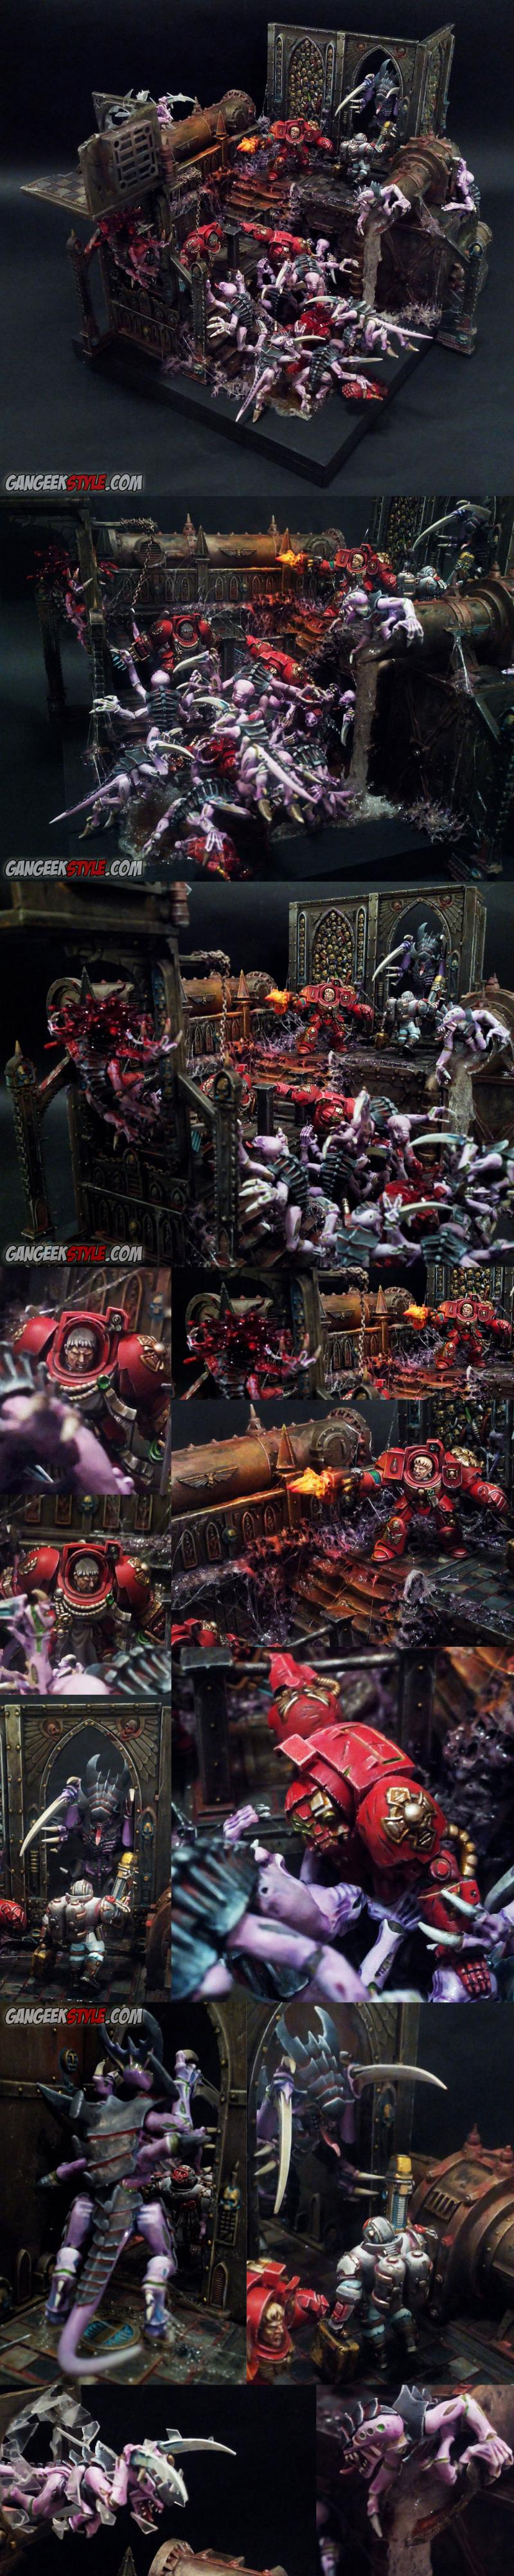 Blood Angels, Diorama, Object Source Lighting, Space Hulk, Space Marines, Tyranids